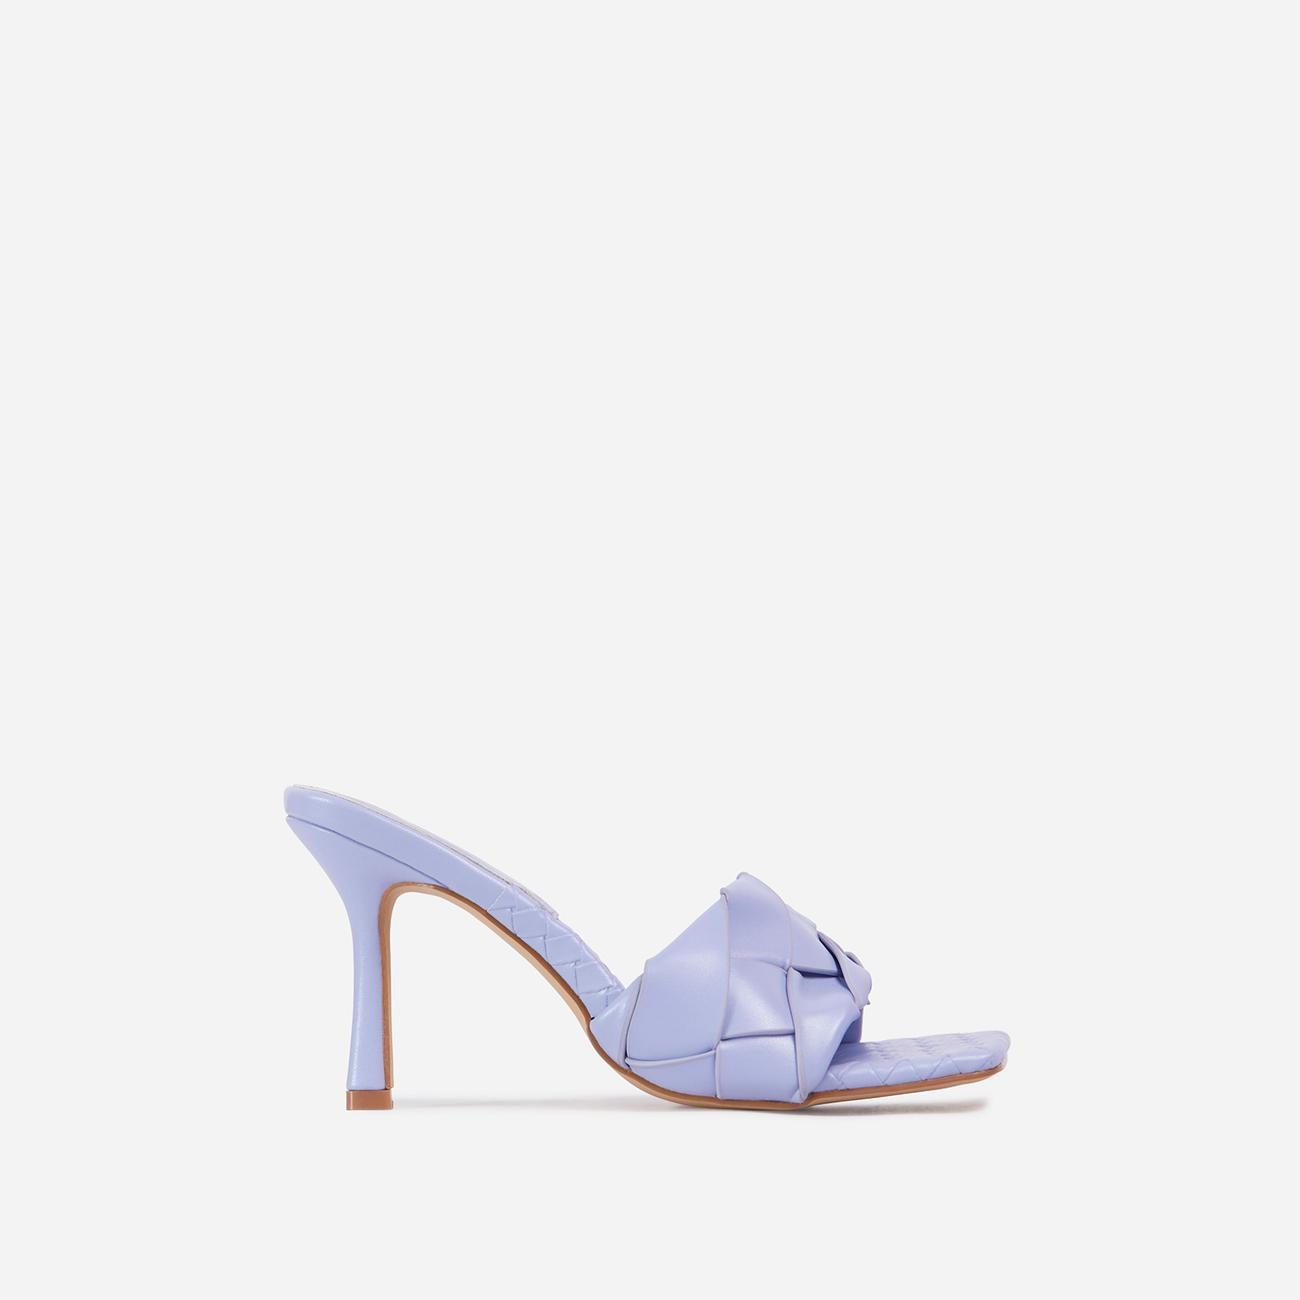 Turntup Woven Square Peep Toe Mule In Lilac Faux Leather Image 1